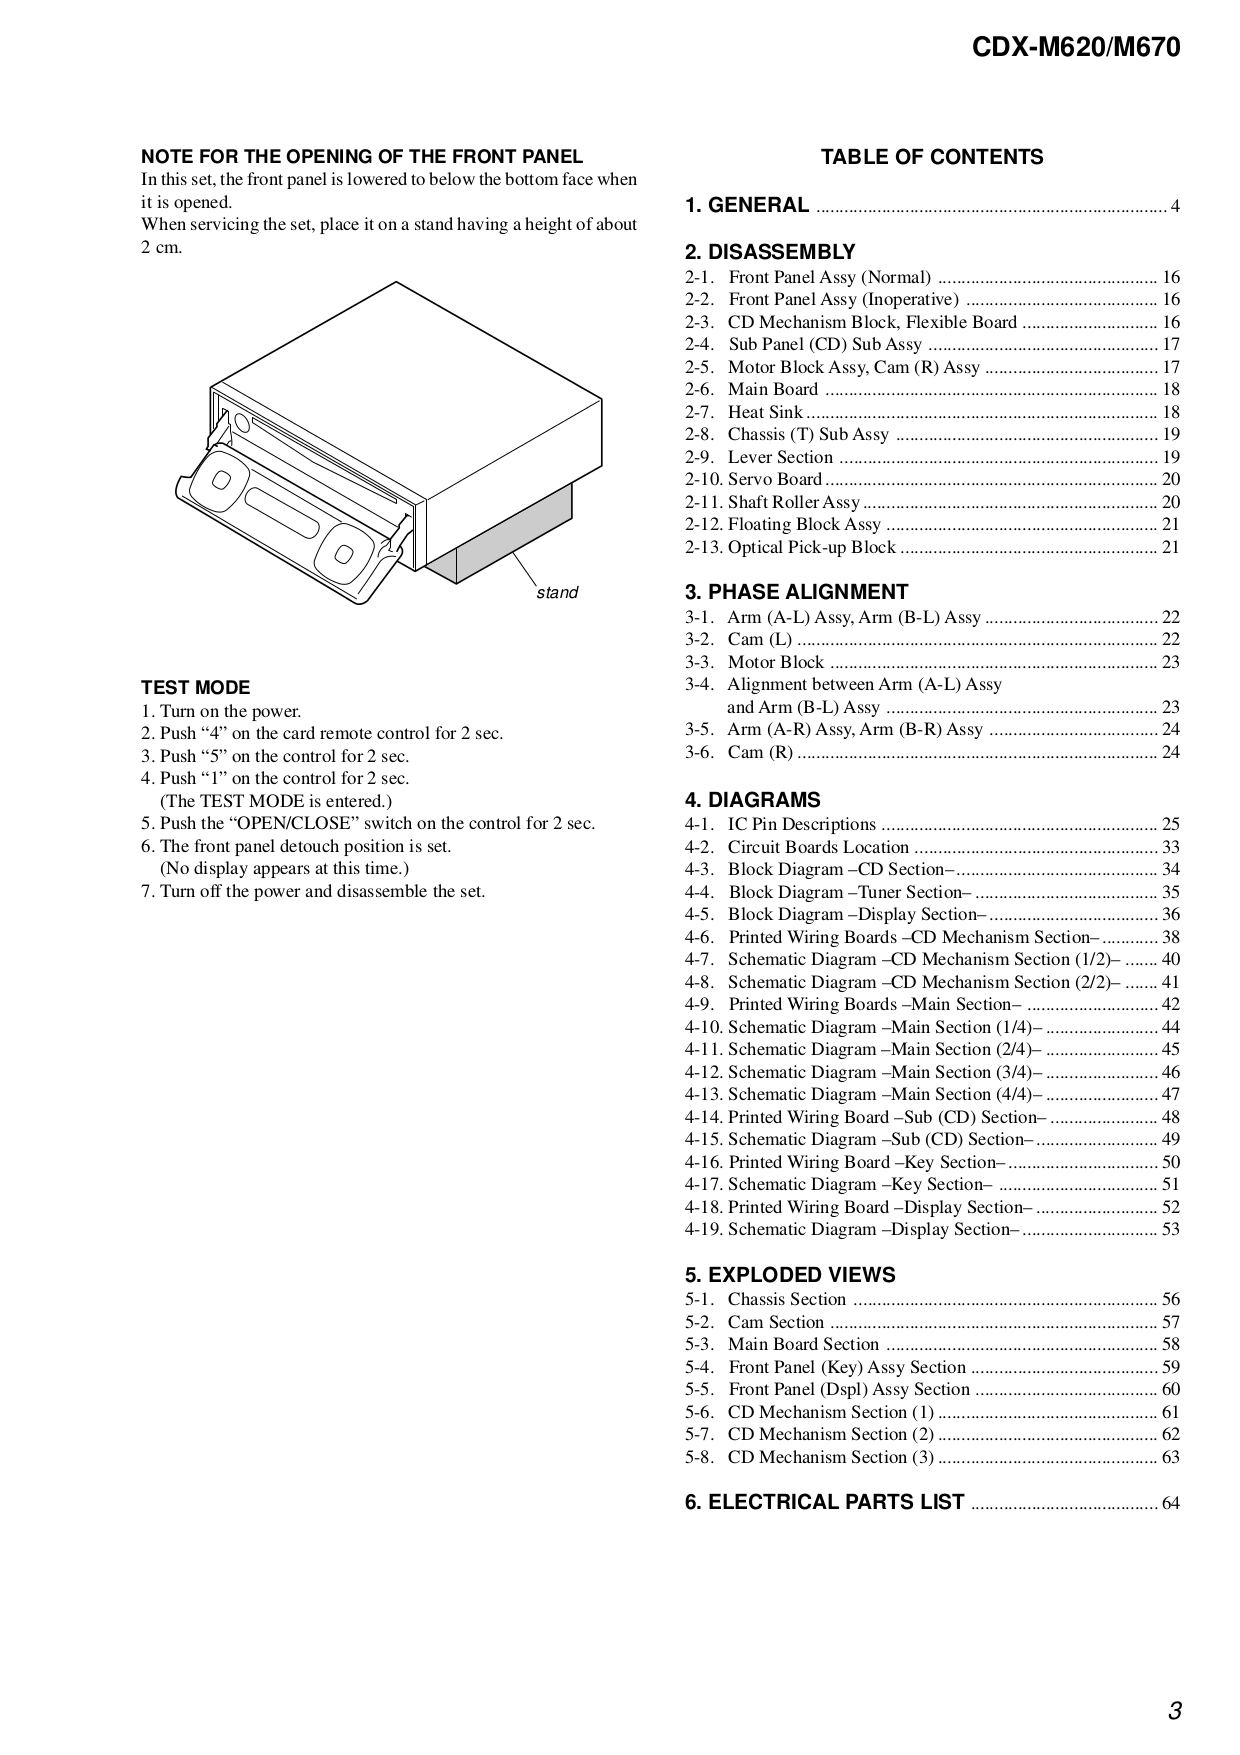 pdf manual for sony car receiver cdx m750 sony car receiver cdx m750 pdf page preview